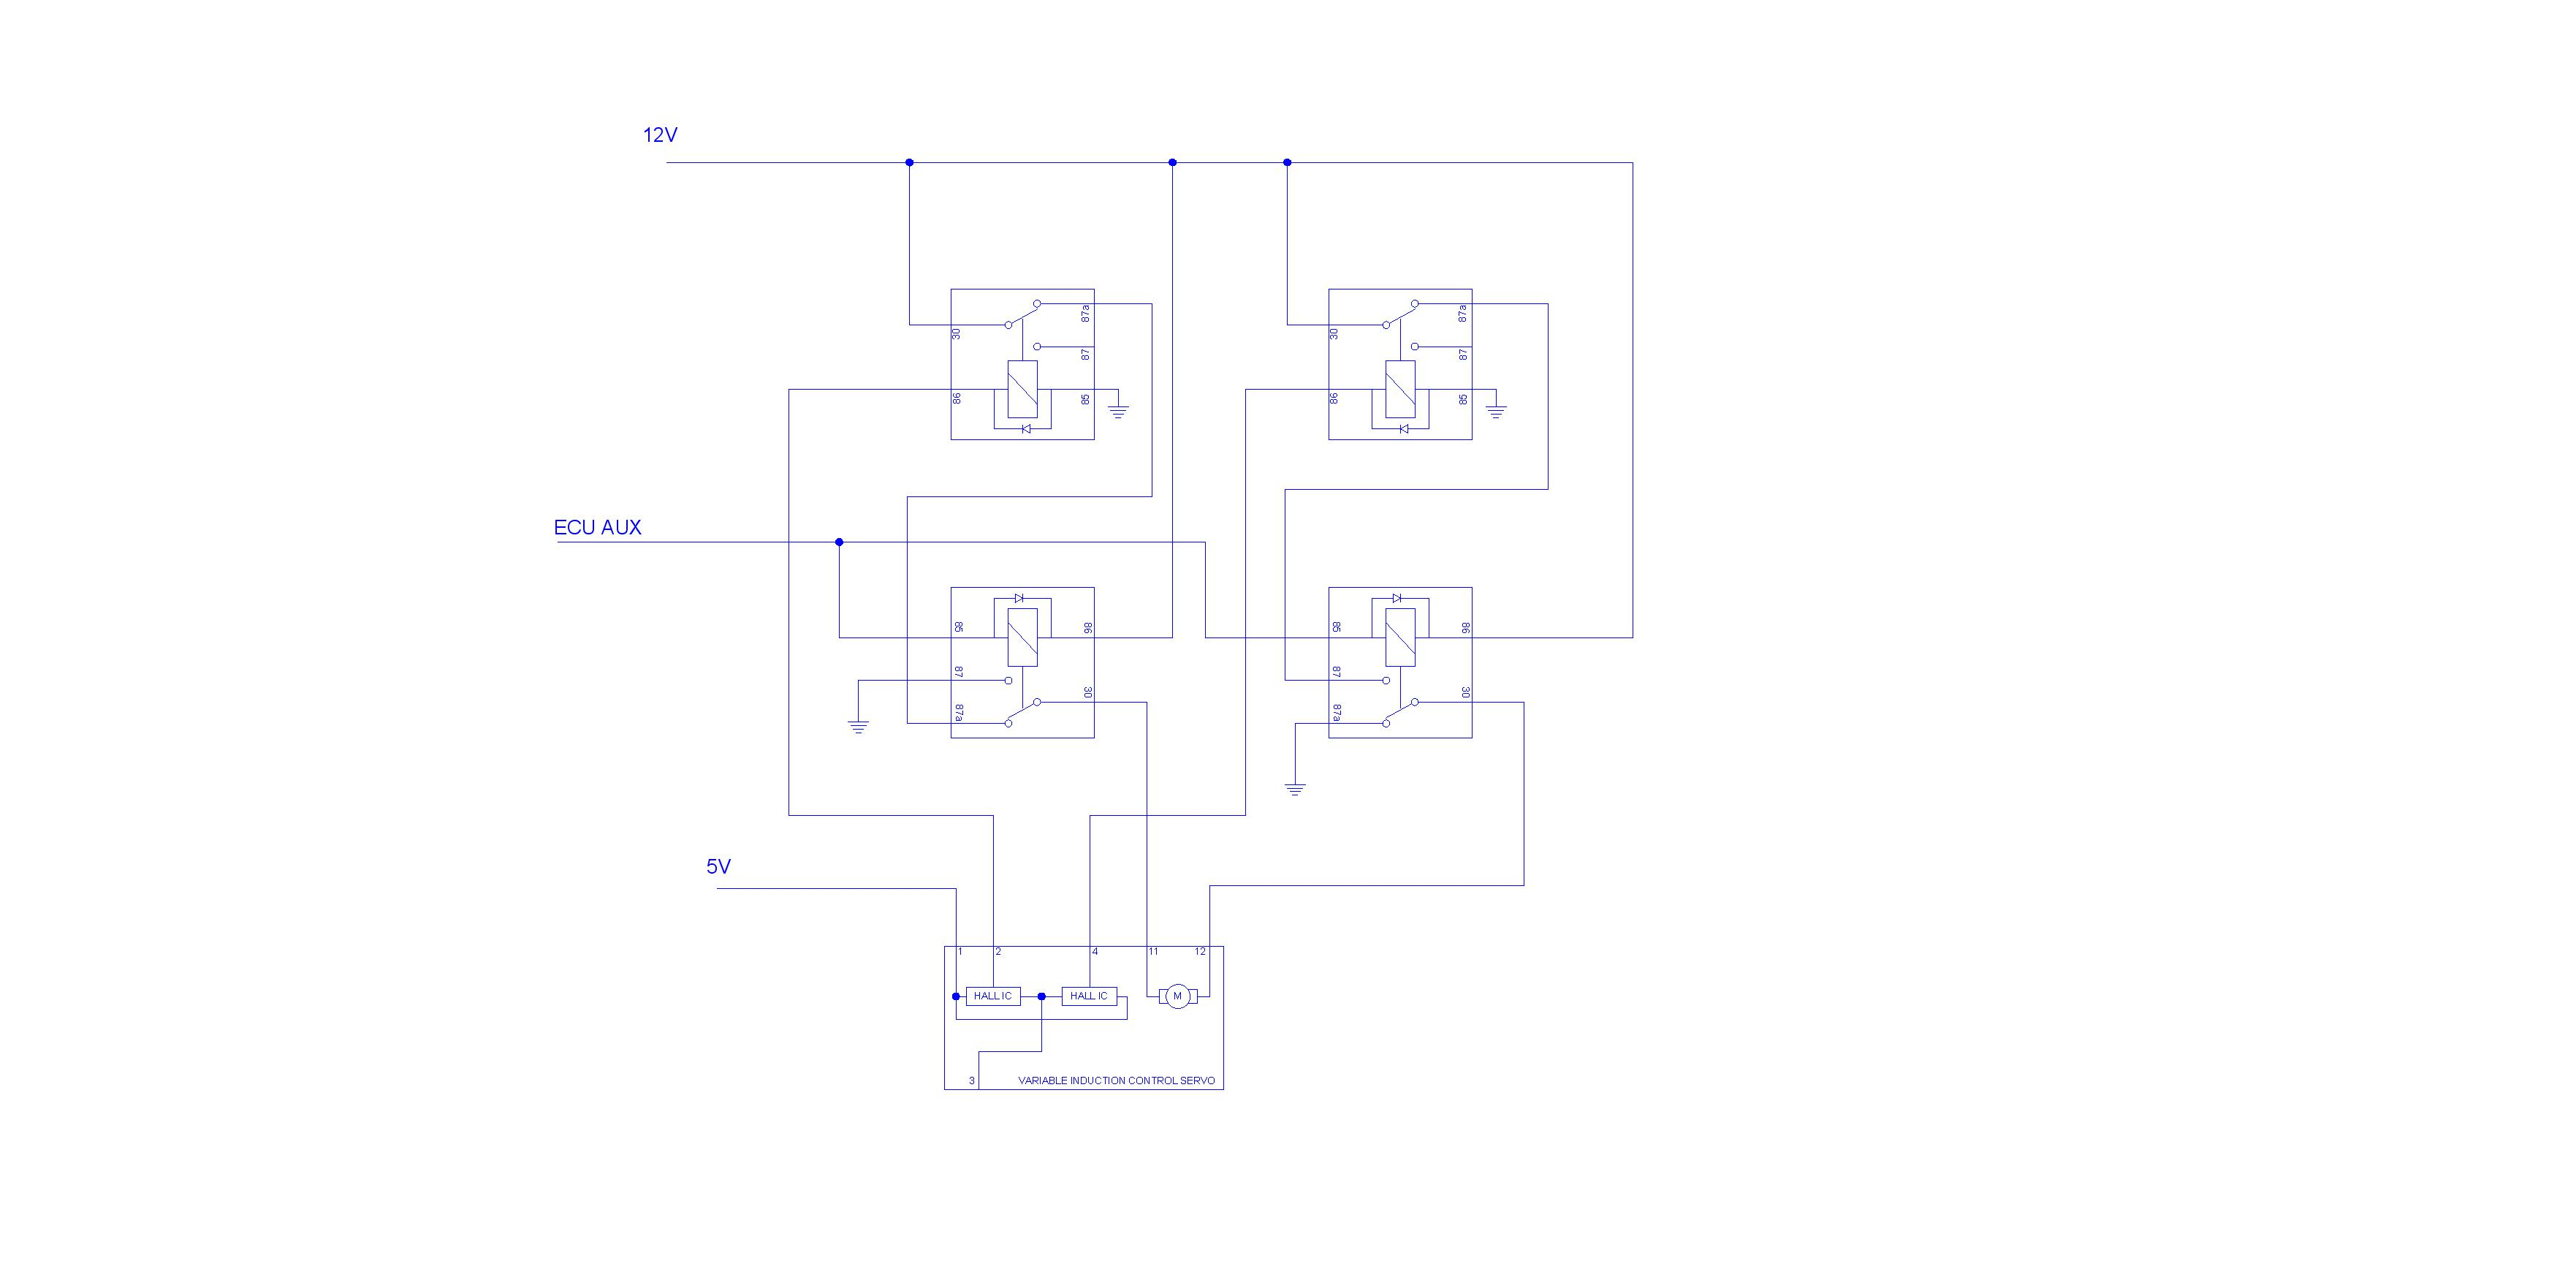 Mitsubishi Engine 6a12 Mivec Wiring Diagram 4g92 Advice Required G4 Link Management Rh Forums Linkecu Com